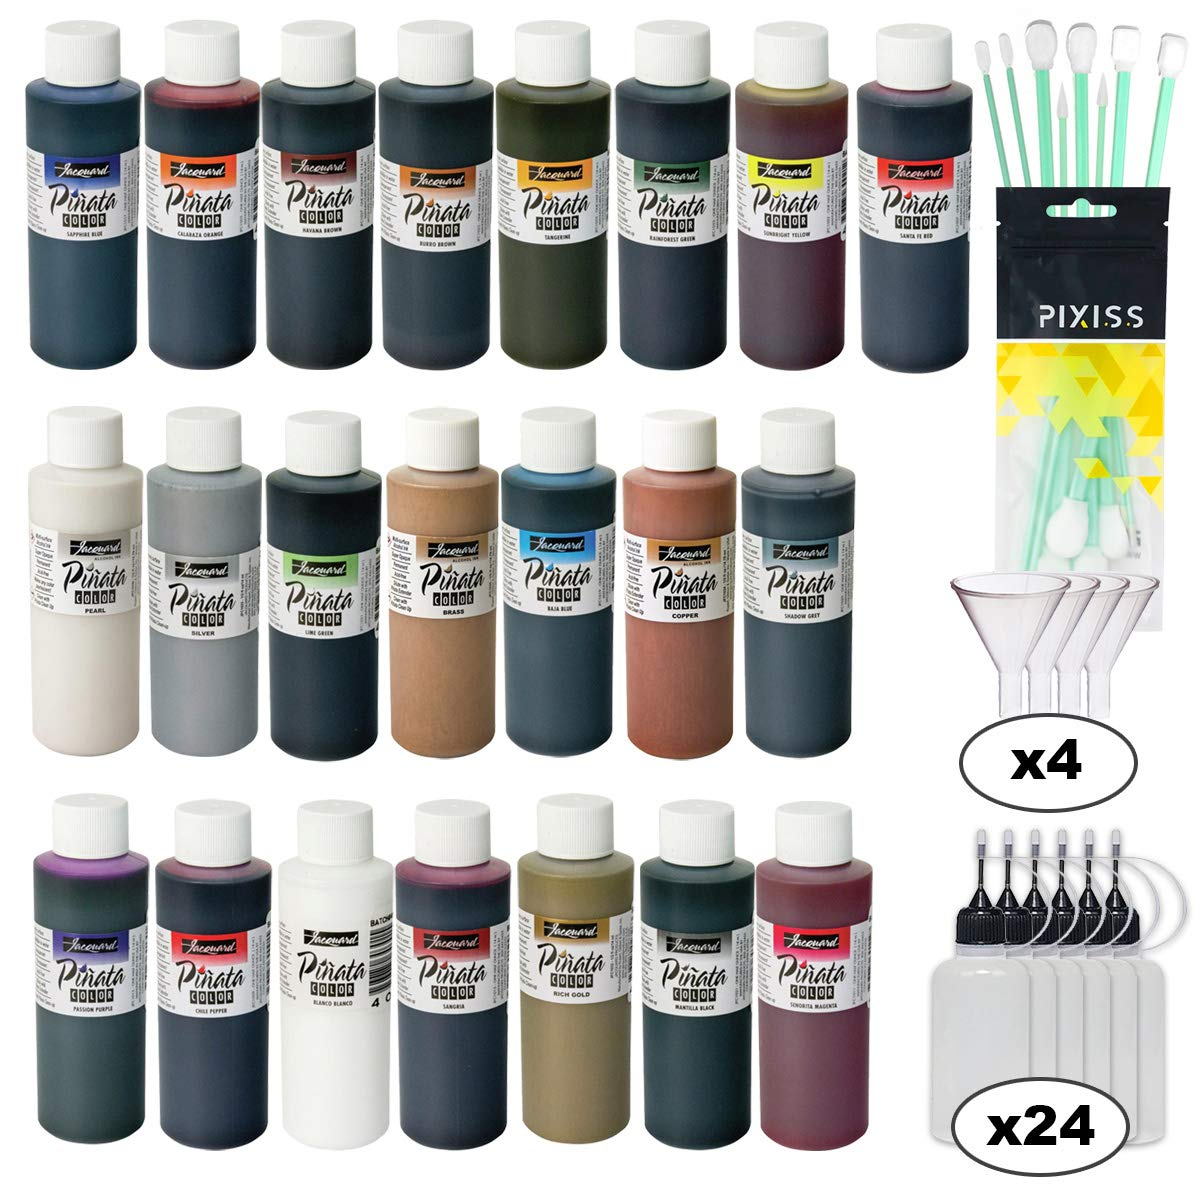 Jacquard Pinata Ultimate Alcohol Ink Kit, All 22 Alcohol Ink Colors (4-Ounce Bottles), 24x Pixiss 20ml Needle Tip Applicator and Refill Bottles, 4X 1.5 inch Funnels and 10x Pixiss Ink Blending Tools by GrandProducts